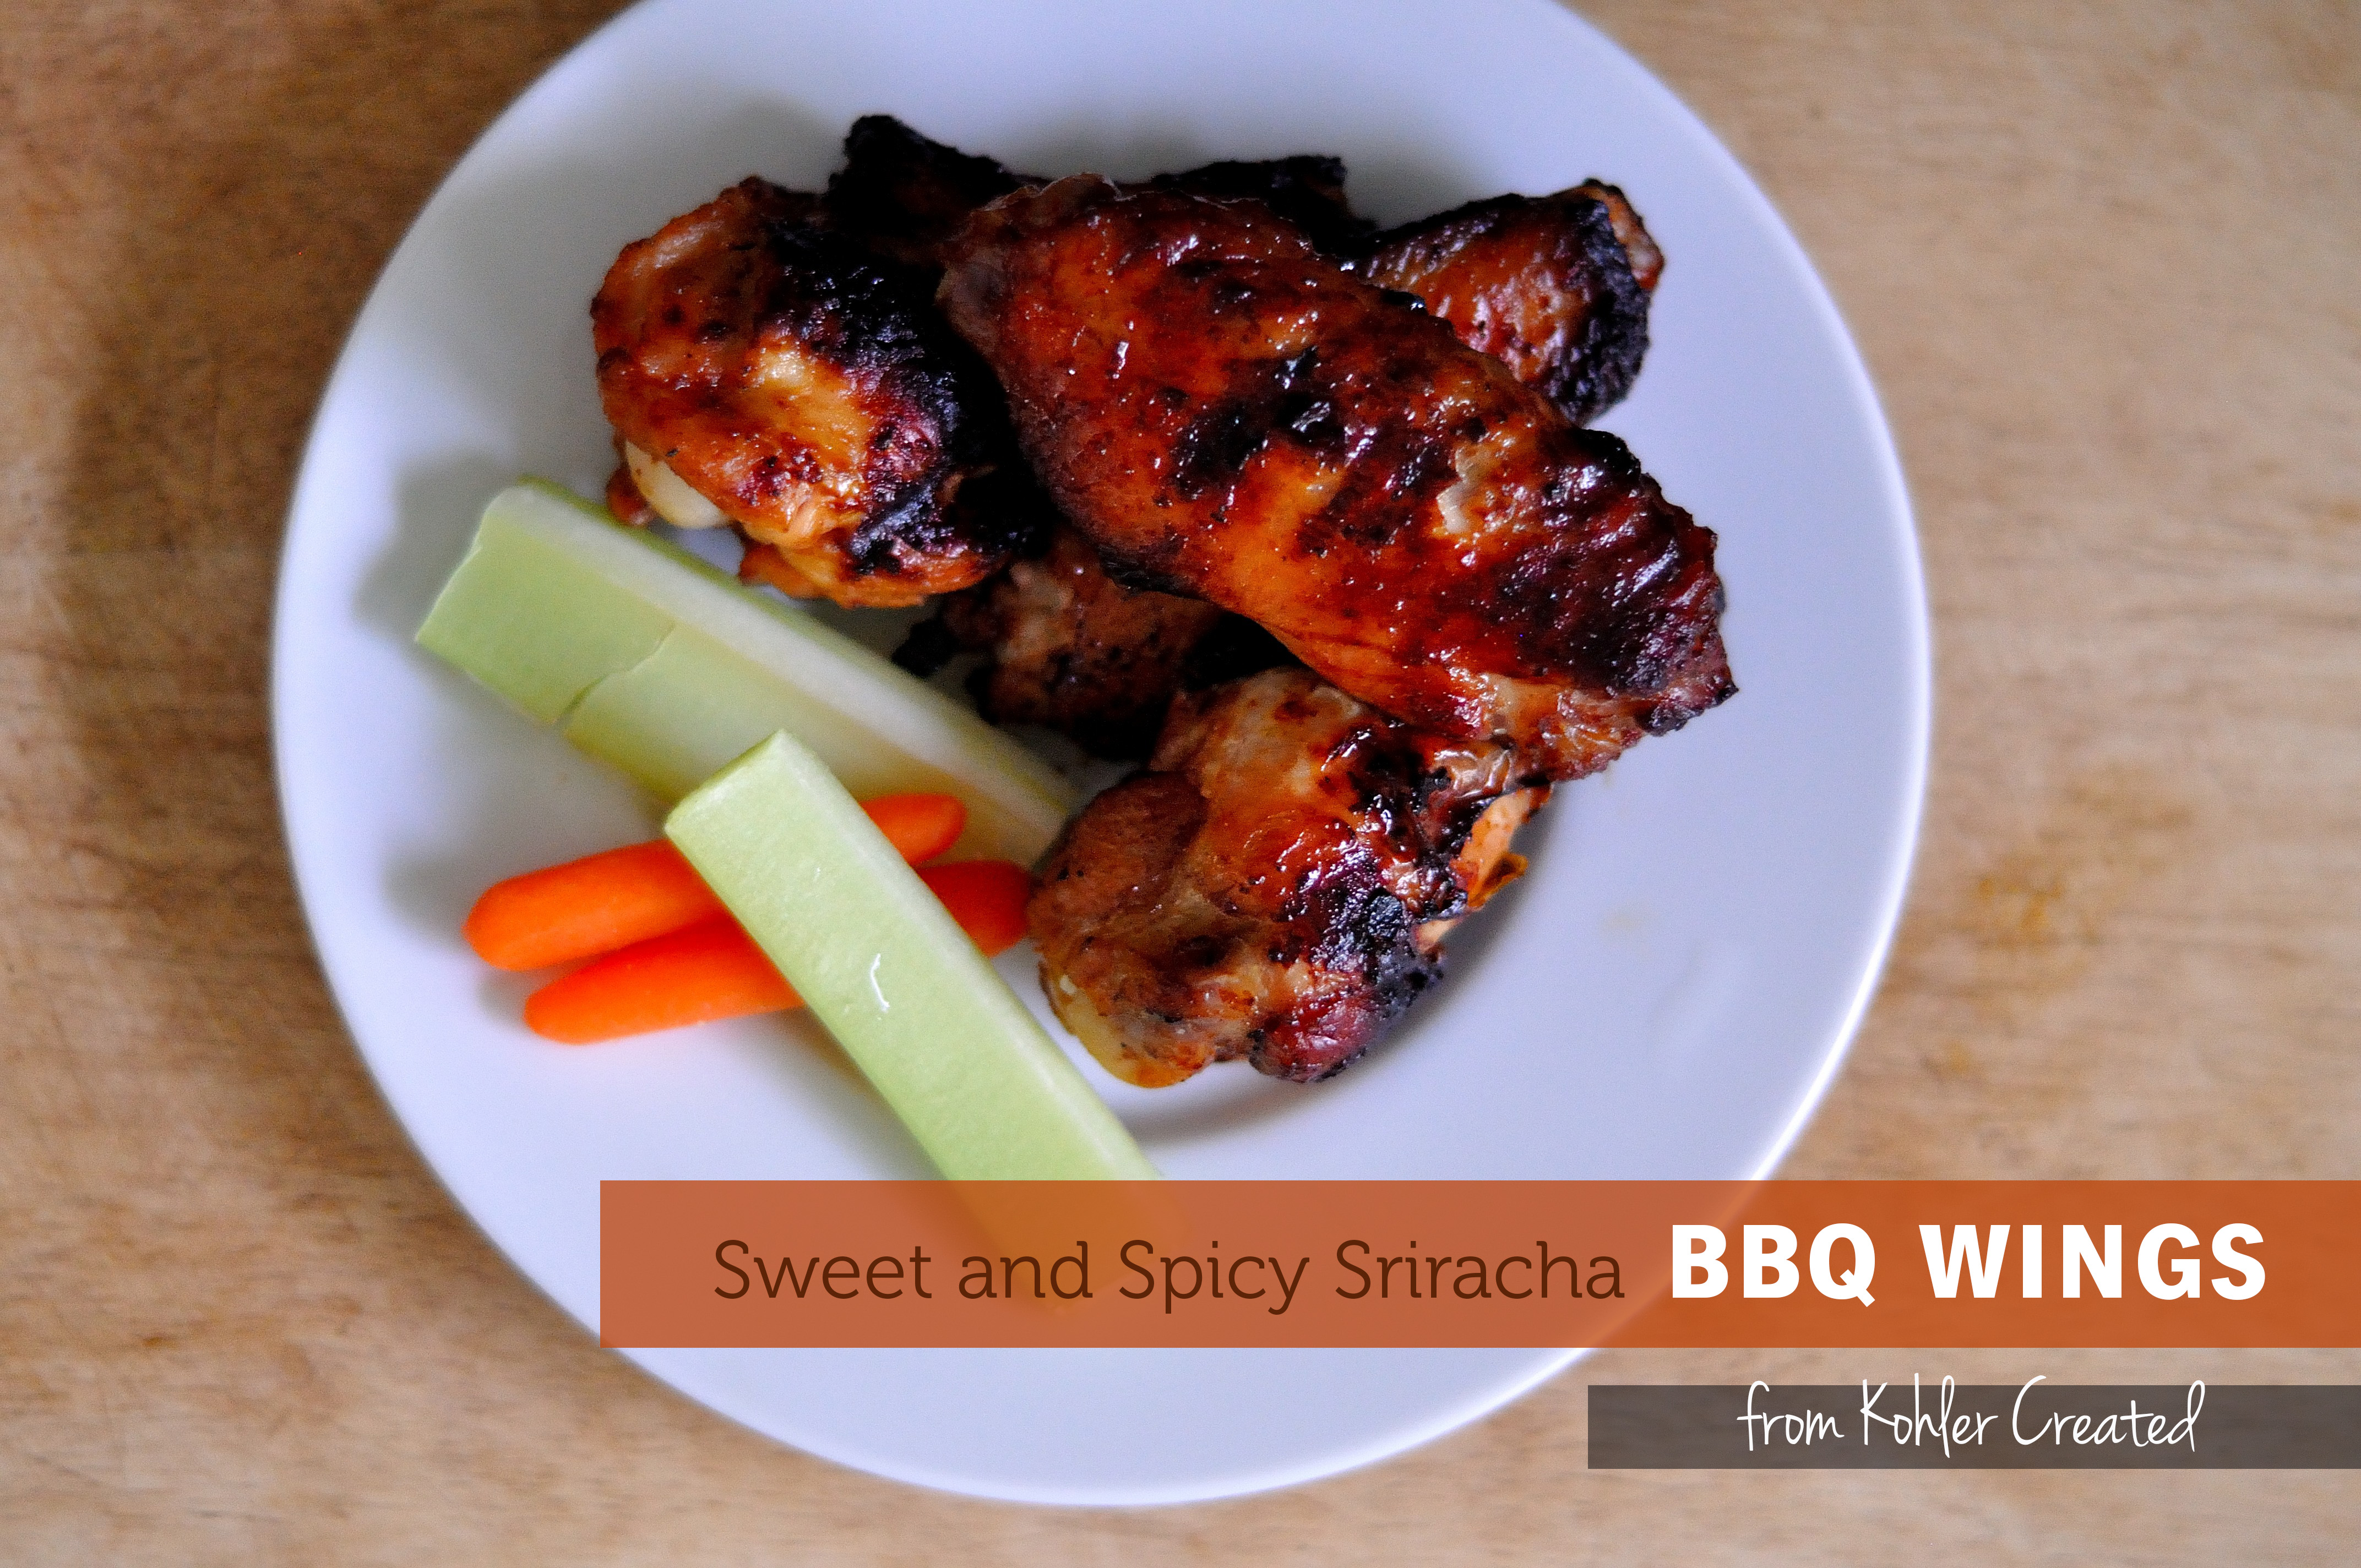 Sweet and Spicy Sriracha BBQ Wings - Kohler Created